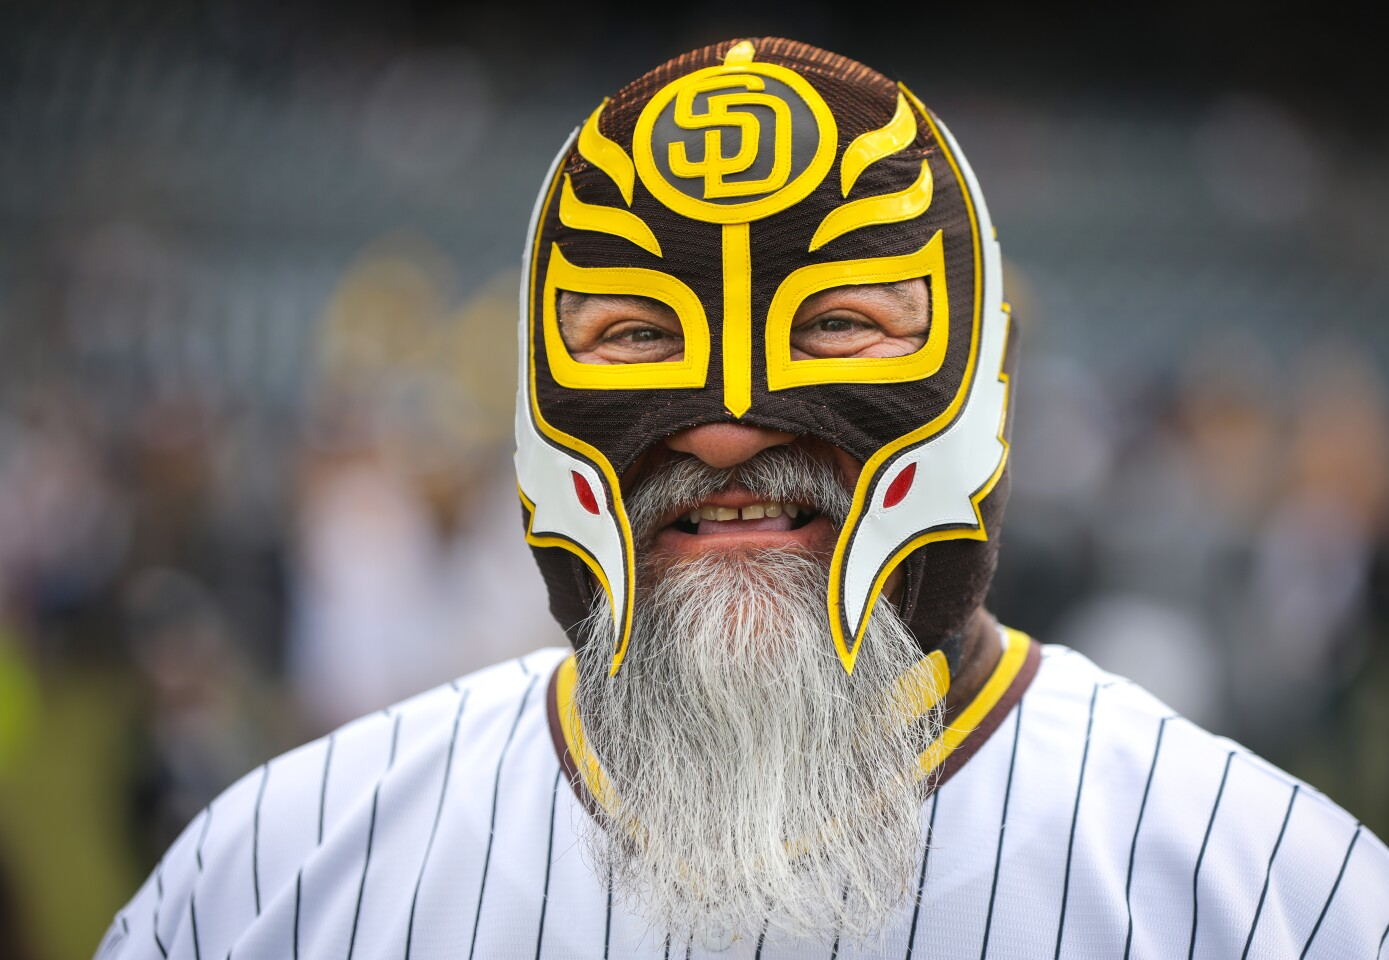 San Diego Padres fan Jose Rodriguez of Palm City gets in the spirit of the coming baseball season by wearing his lucha libre mask during Padres FanFest 2020, January 11, 2020 at Petco Park in San Diego, California.